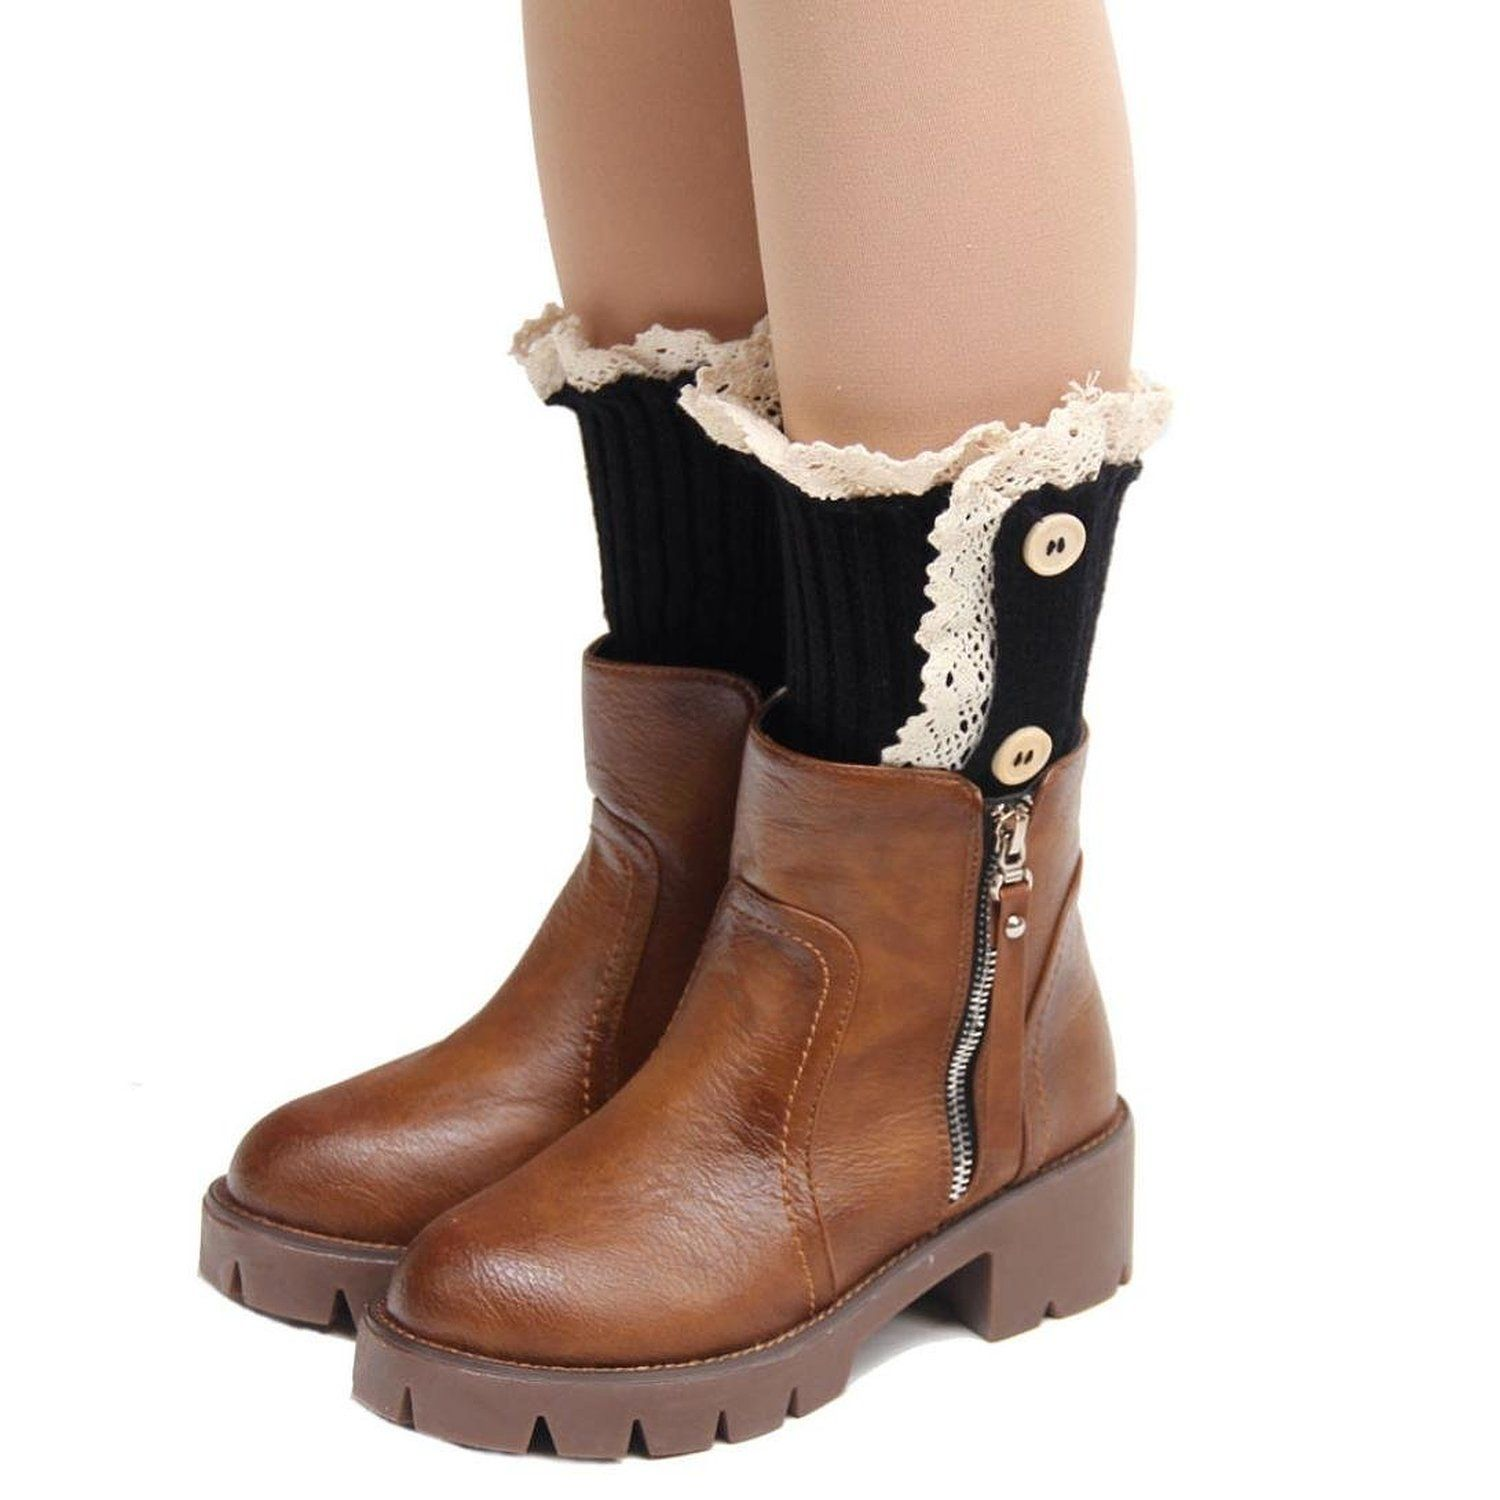 Dzt womenus girlus short button leg warmer boot cuffs socks